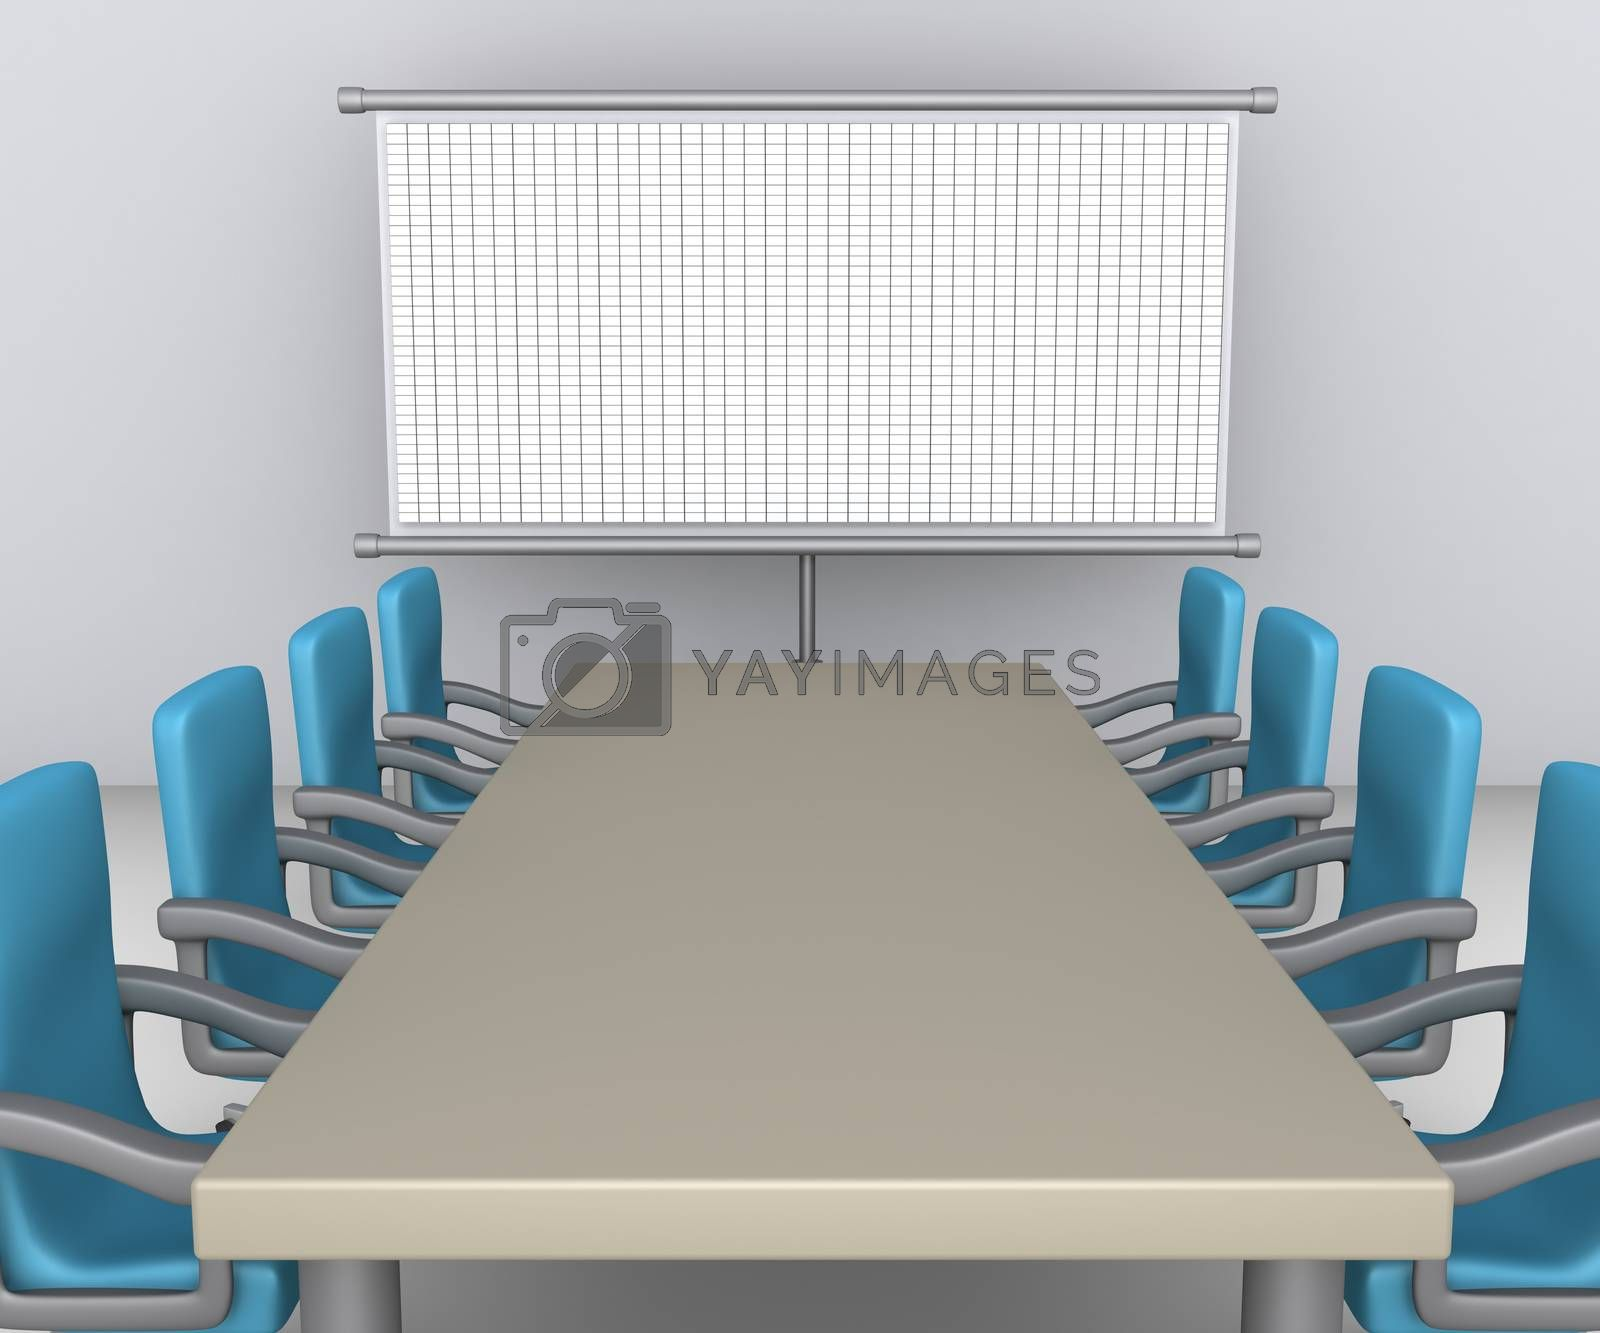 Table and empty armchairs are in front of whiteboard with grid